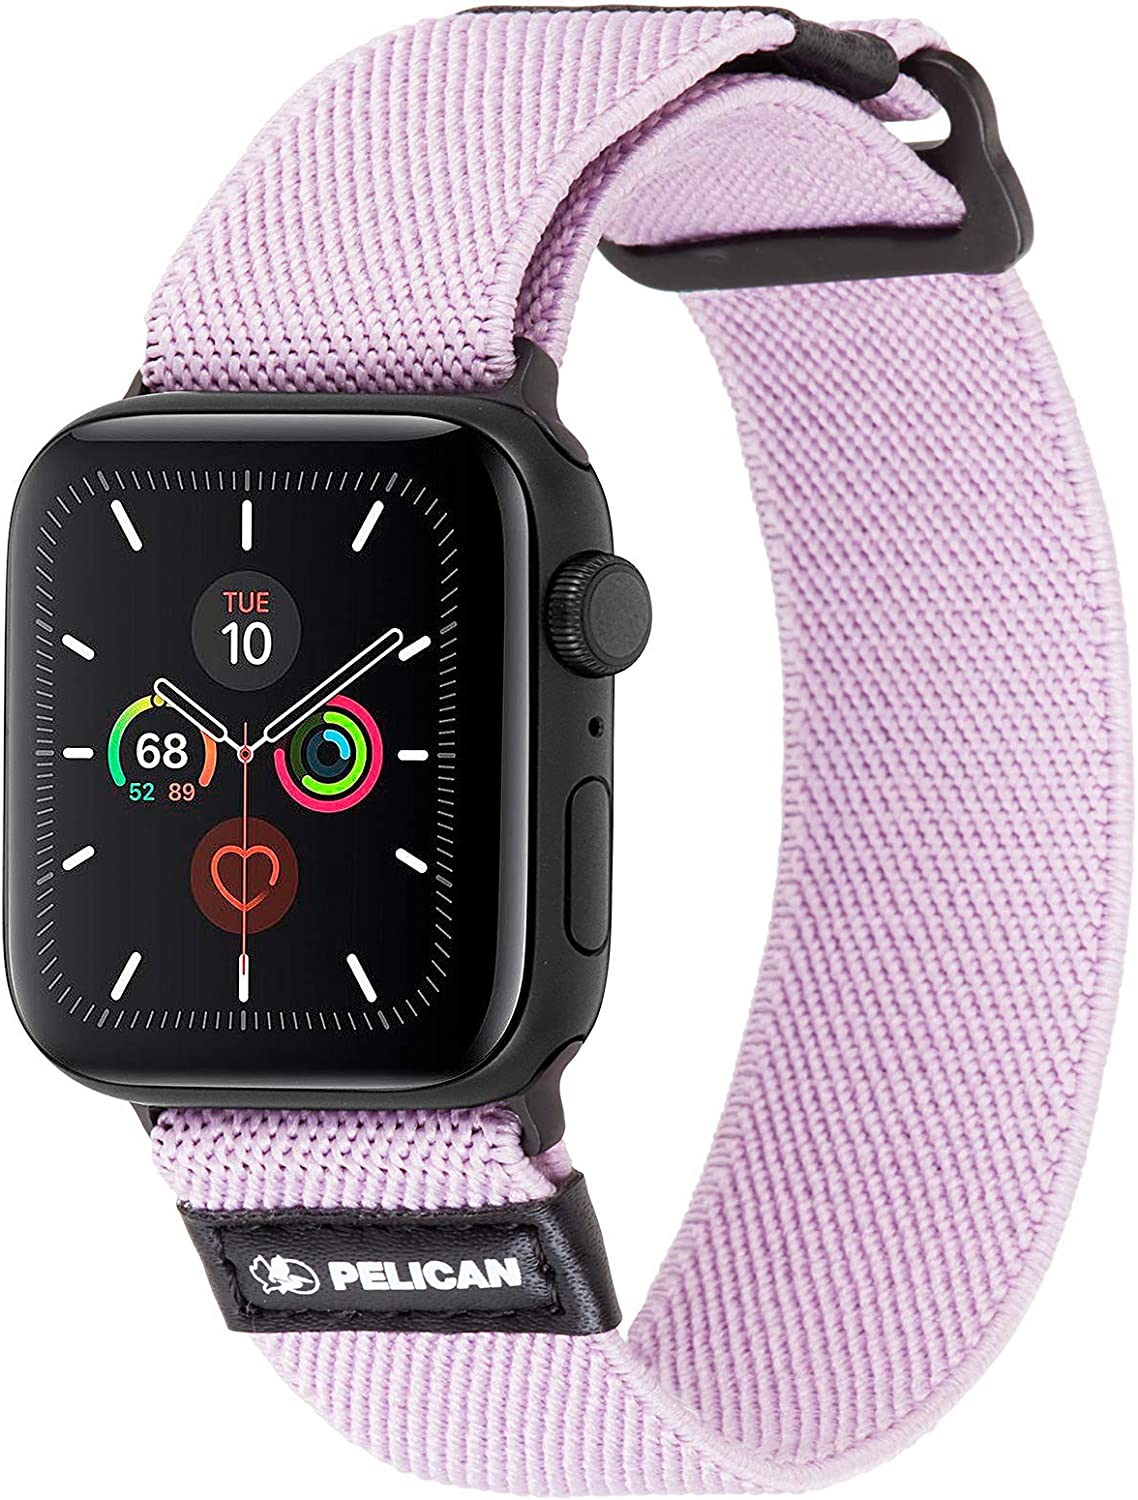 Pelican - 42-44mm Watch Band - PROTECTOR Series - Compatible w/ Apple Watch Series 6, SE, 5, 4, 3, 2, 1 - Mauve Purple